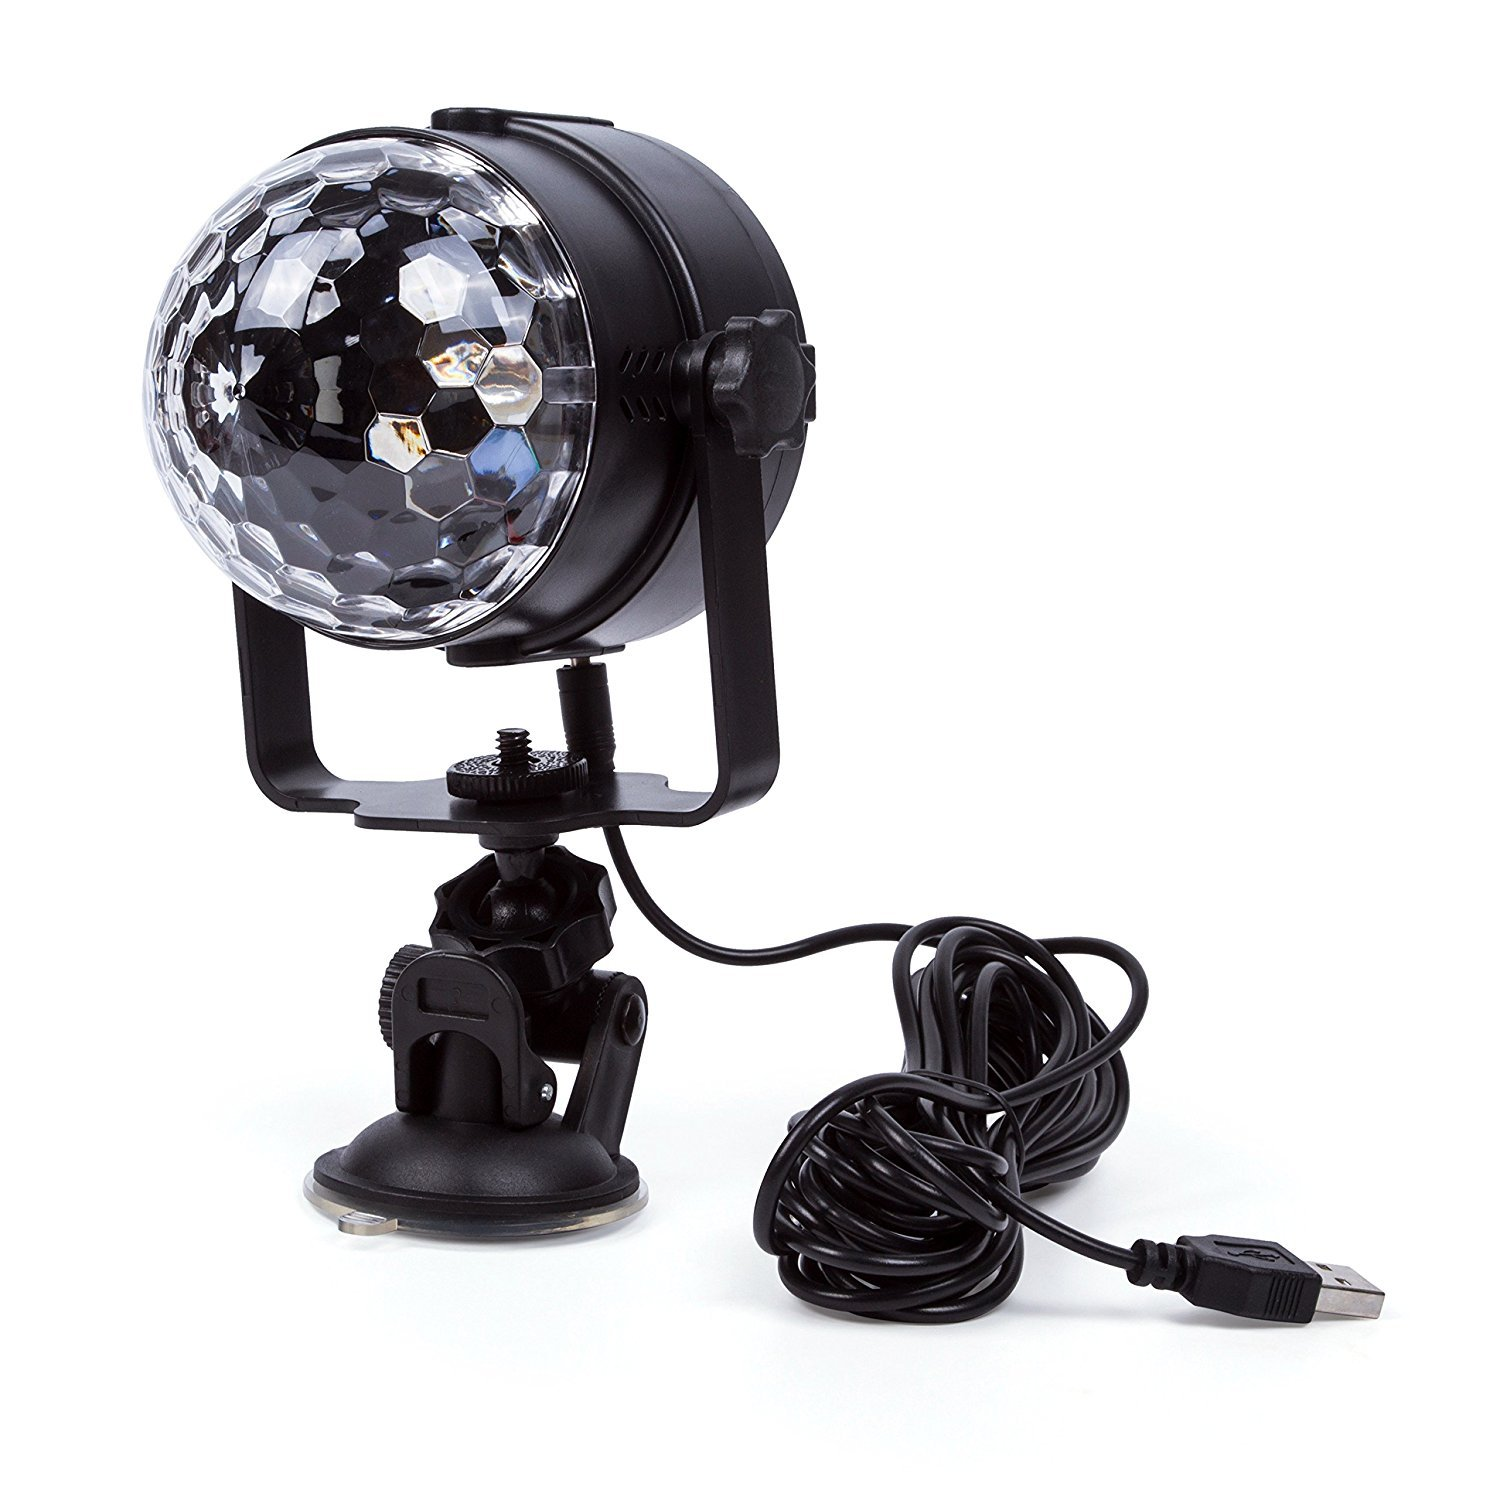 ELEOPTION Mini Stage LED Light 3W RGB Crystal Magic Ball LED Lamp 7 Colors Rotating Outdoor Car Stage DJ Disco Light USB Rechargeable Self-Propelled & Sound Activated Colorful Light by Eleoption (Image #1)